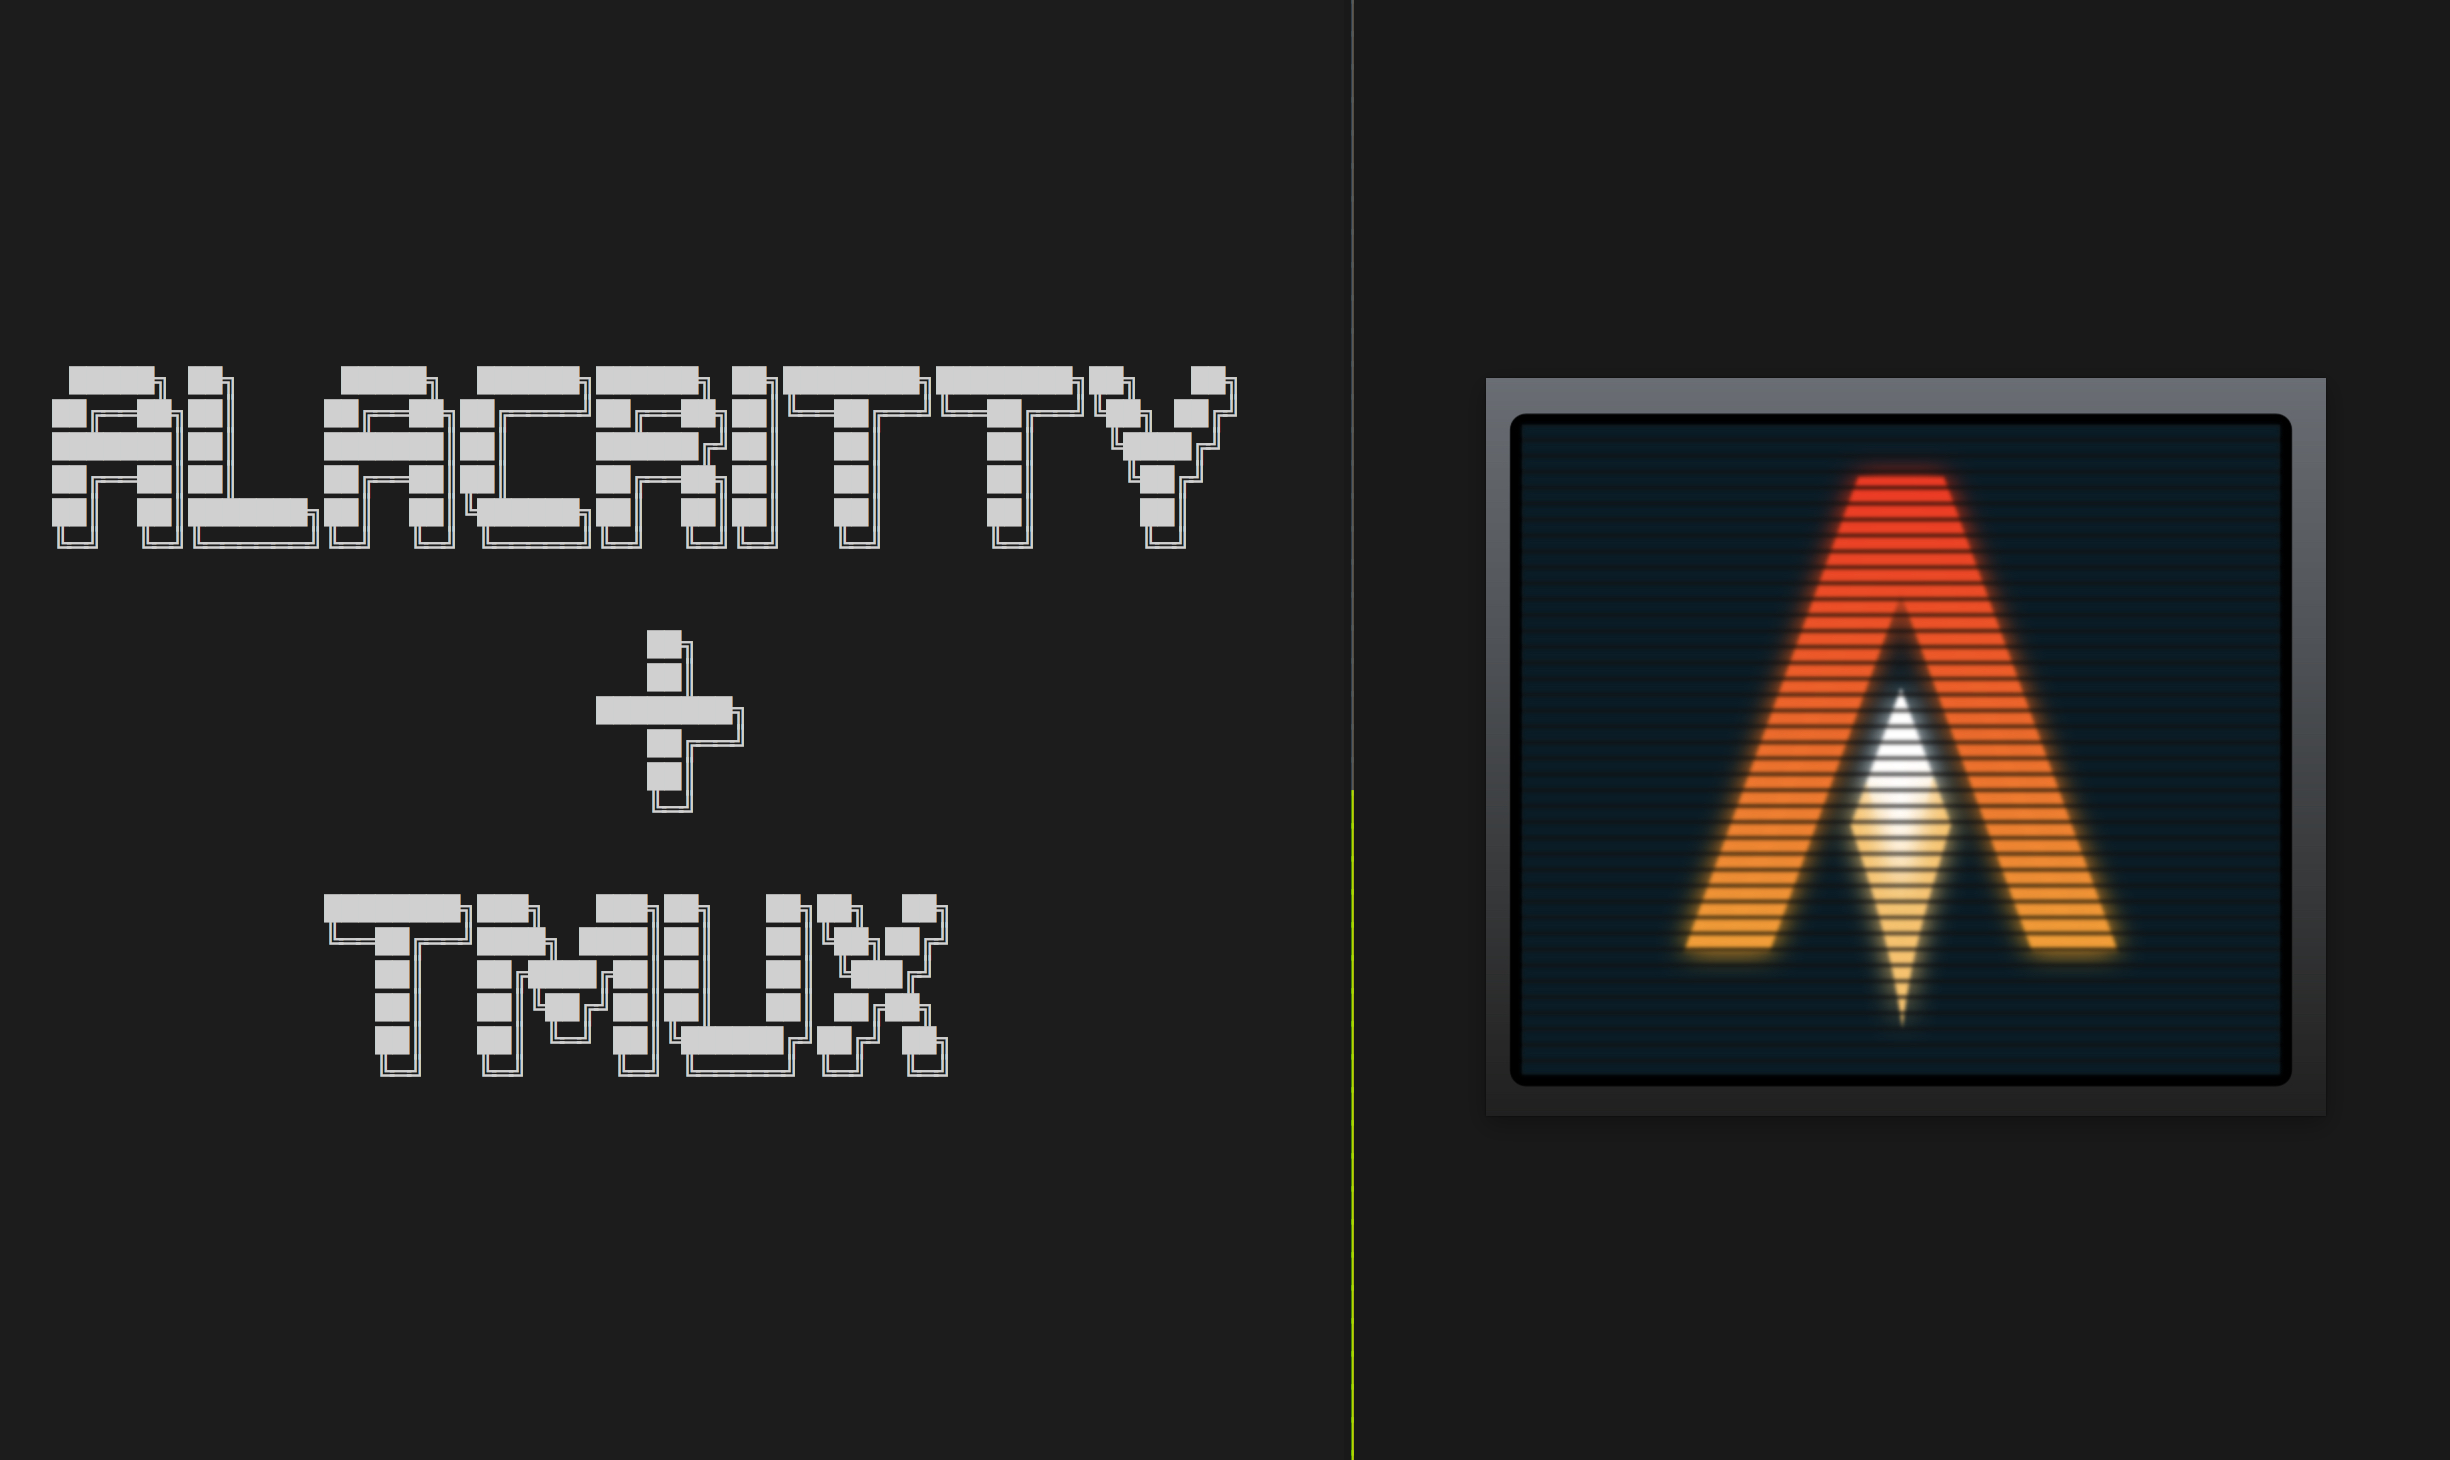 Alacritty integration with Tmux